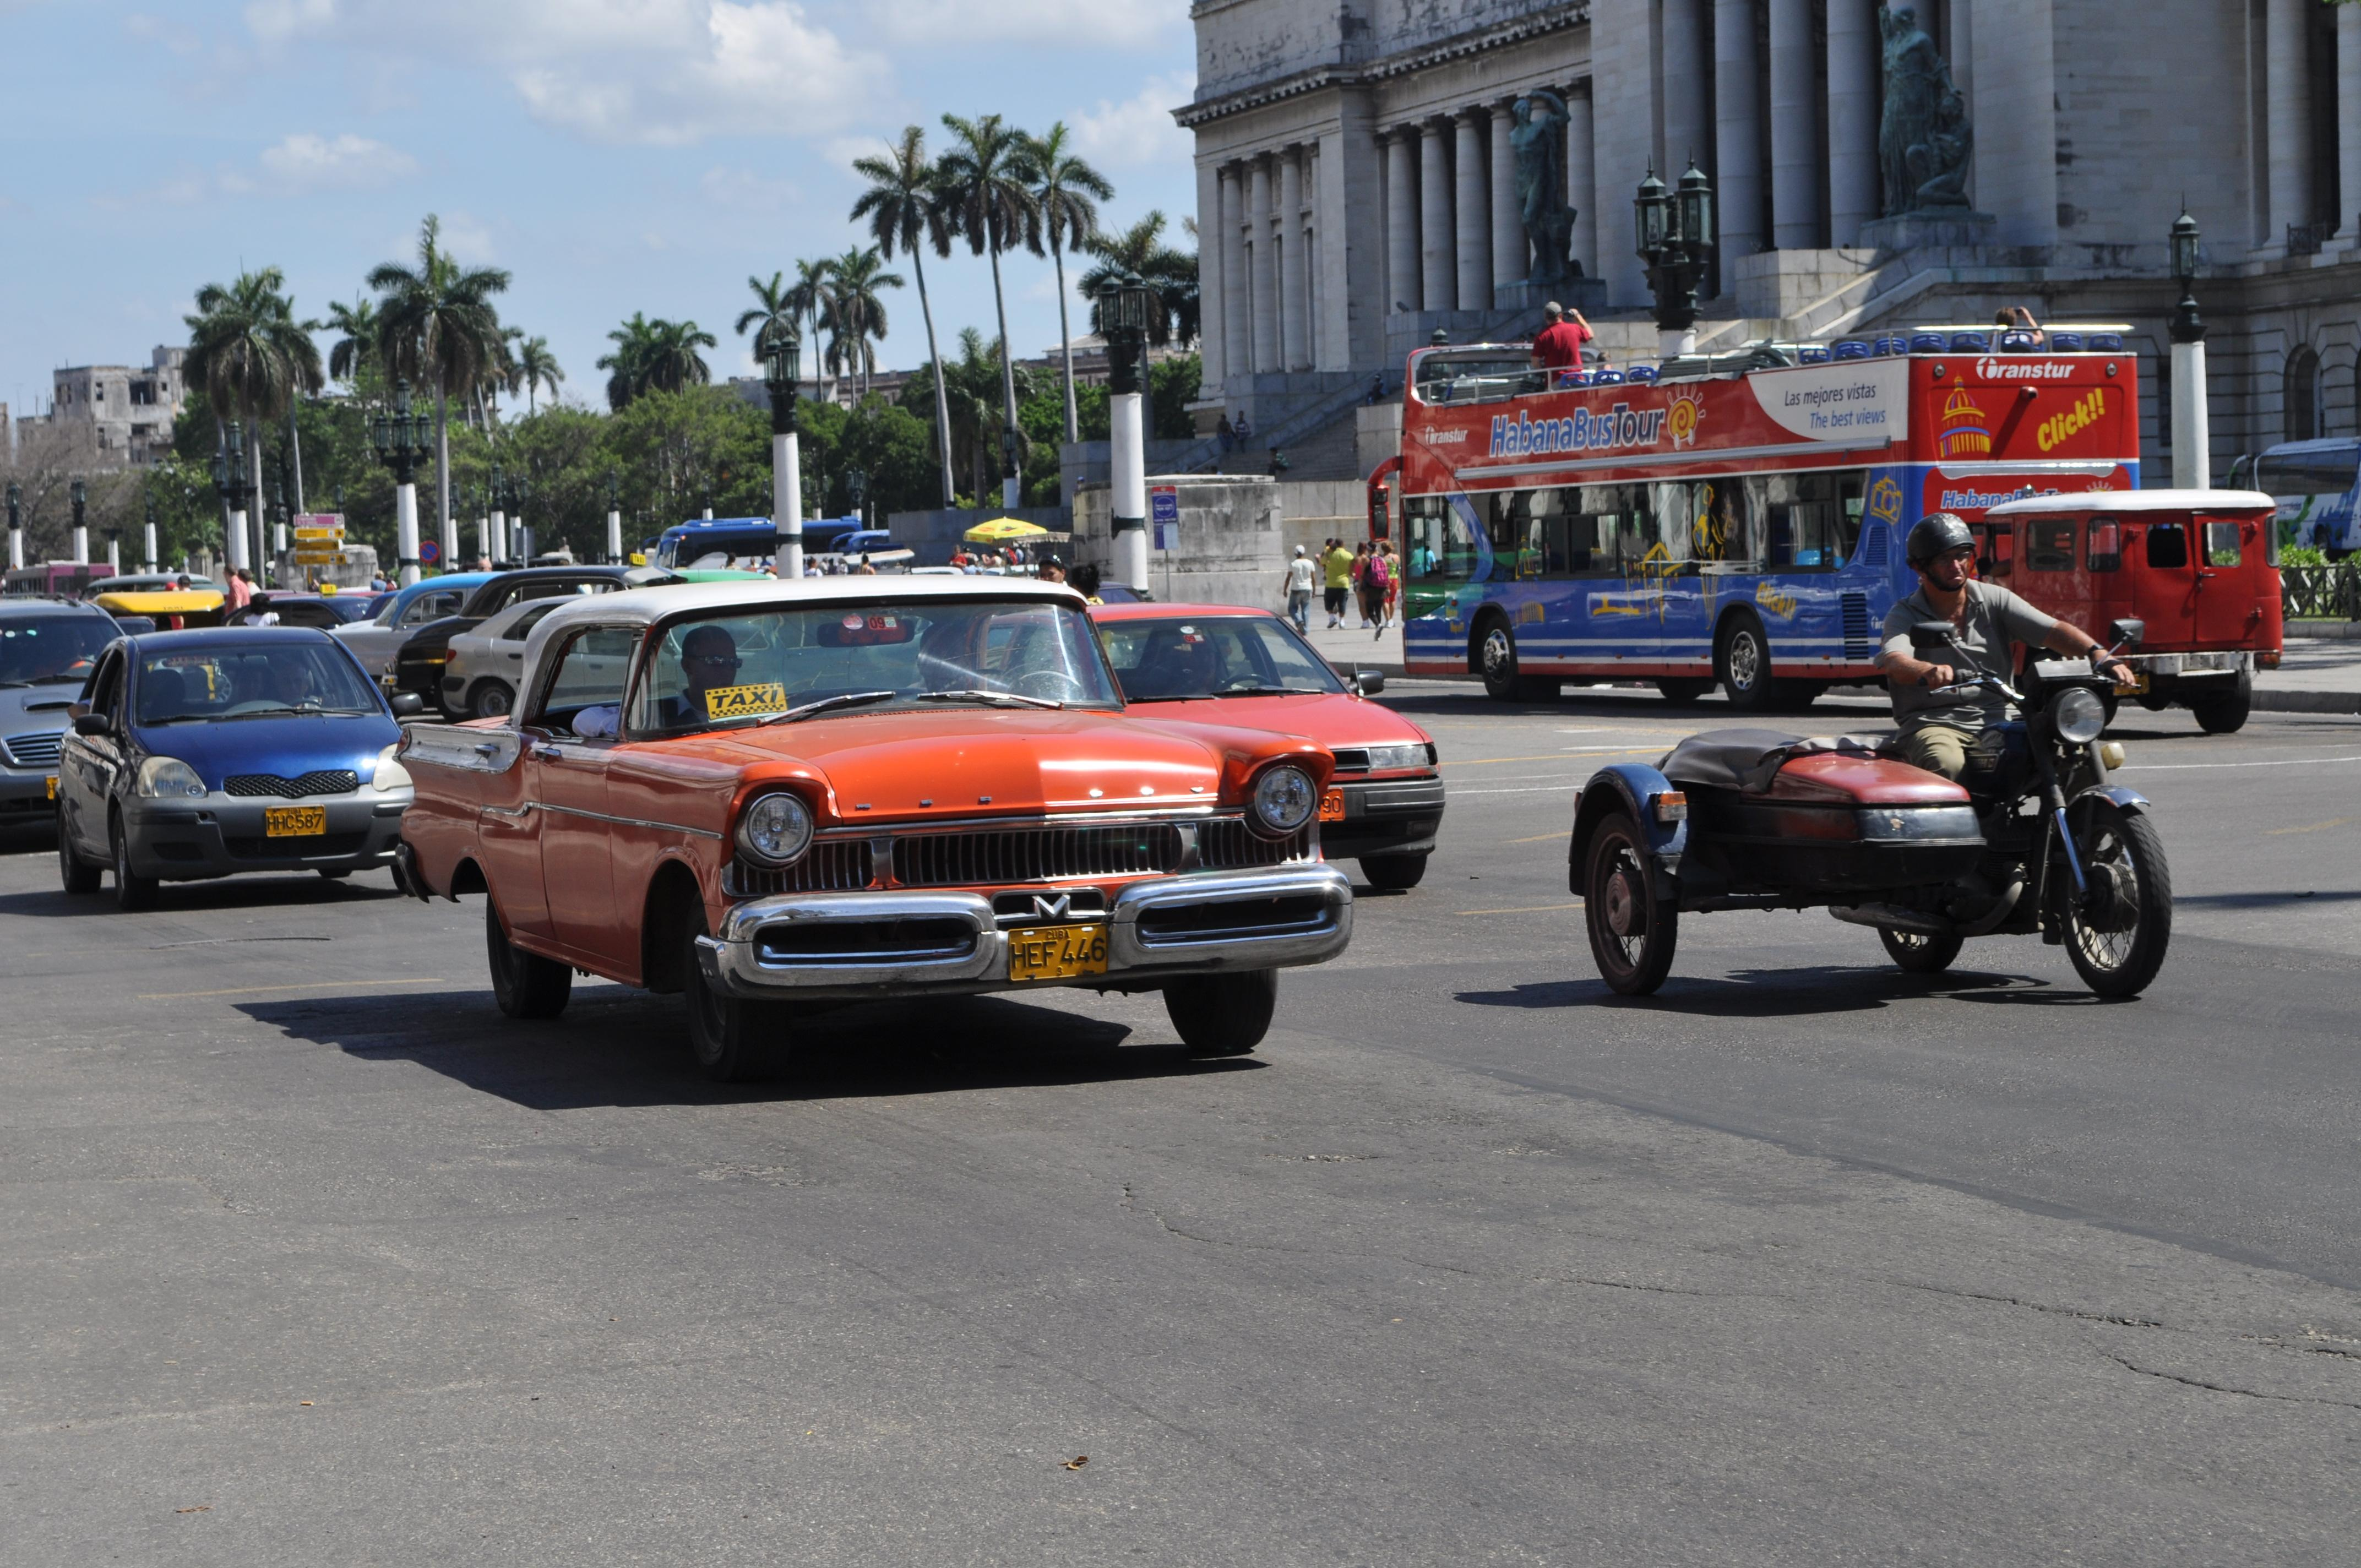 Traffic in Havana Cuba has basically looked exactly the same since the early 1960's